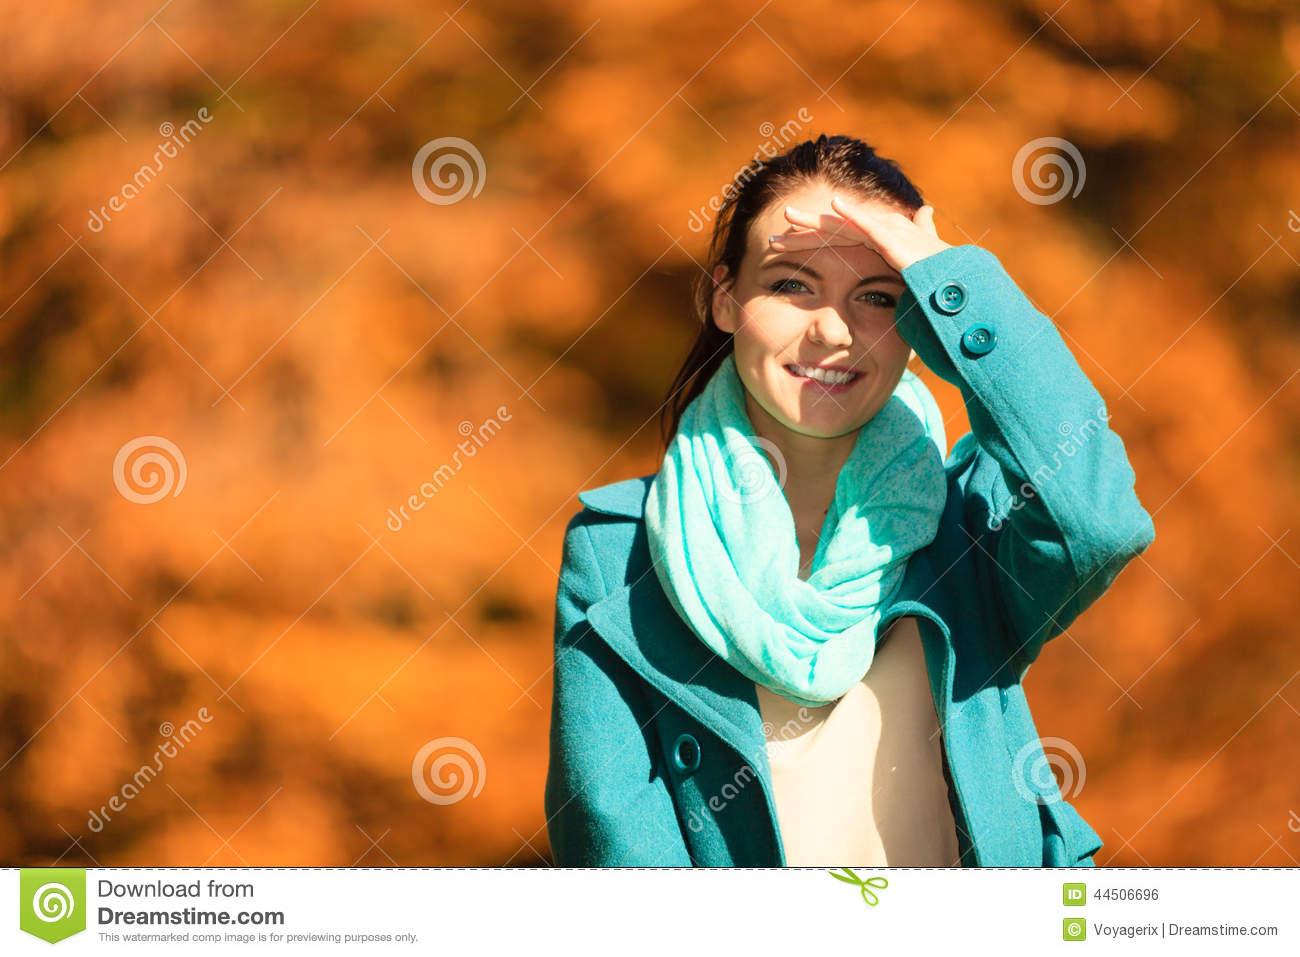 Fall lifestyle concept harmony freedom portrait young woman girl